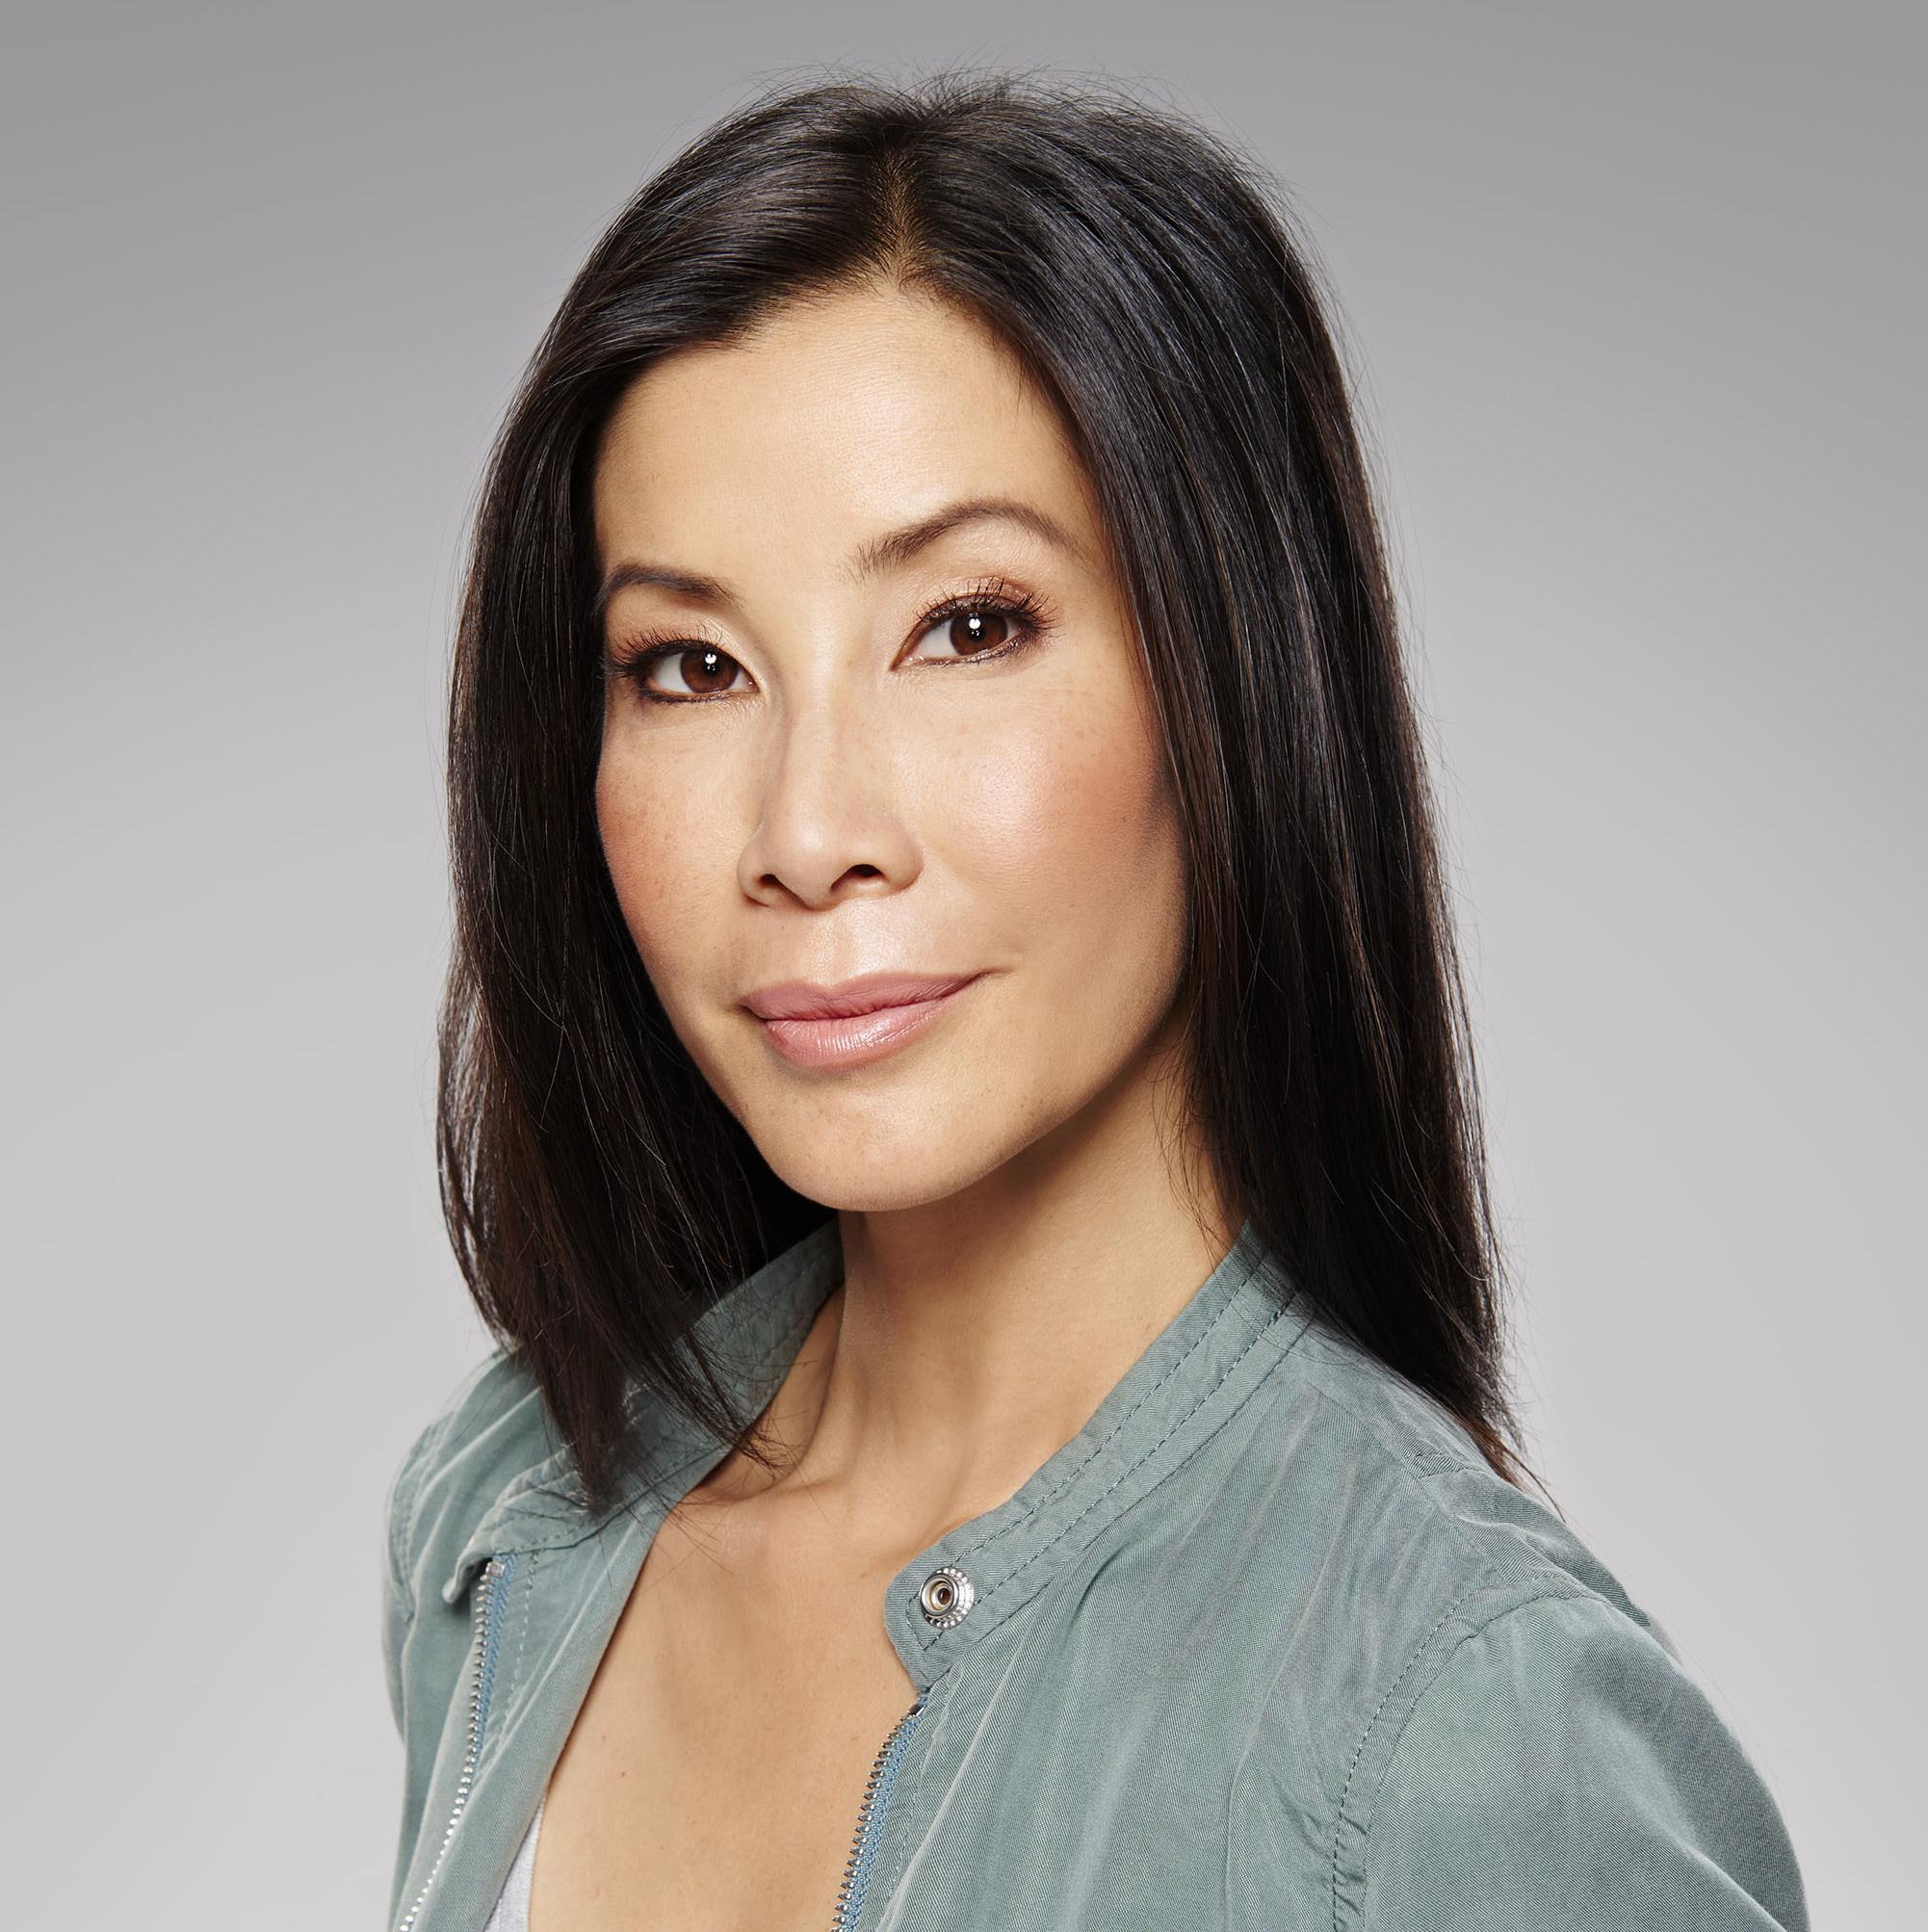 LISA LING Photo 2.jpg